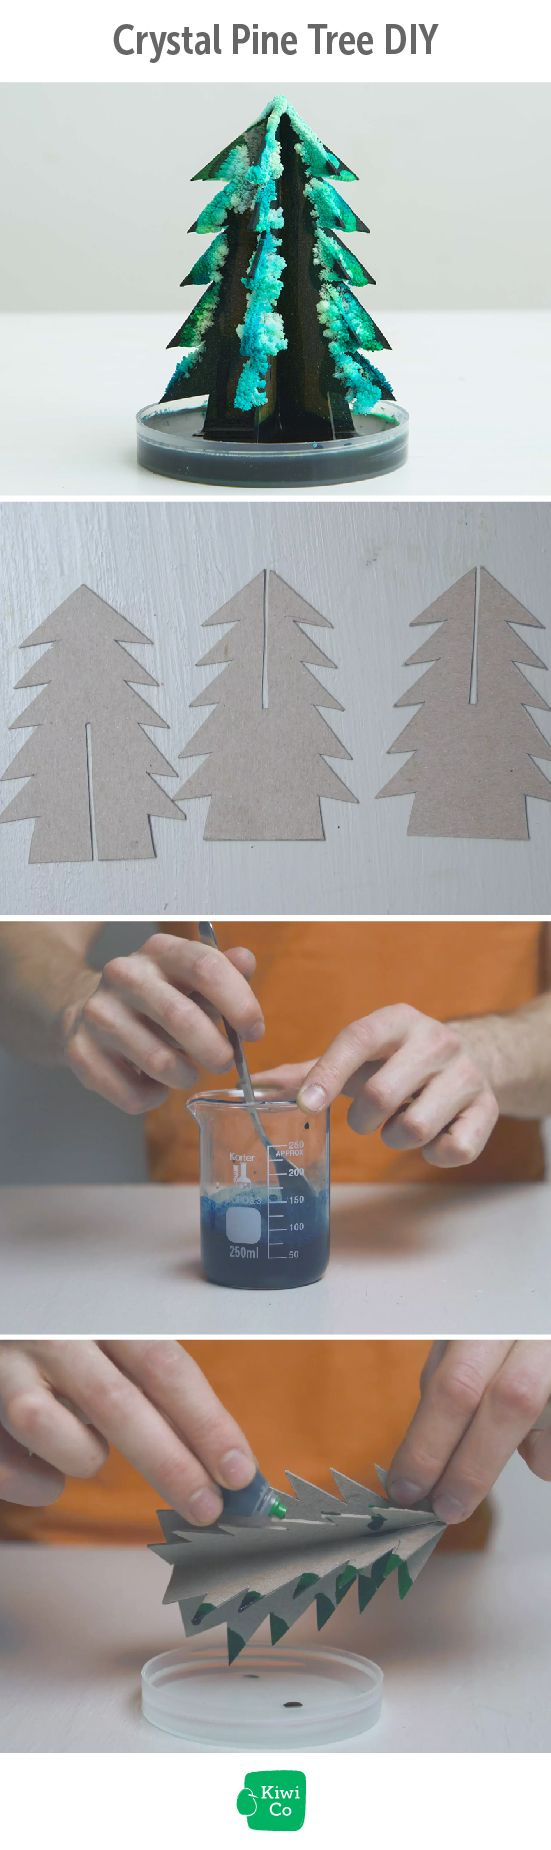 Crystal Pine Tree DIY. This cool crystal pine tree is a fun and easy way to experiment with crystal growth. The crystals are grown on a sturdy paper base, and appear overnight! christmas, science, easy, fun, for kids, activities, boredom busters, simple, science fair, science experiments, educational